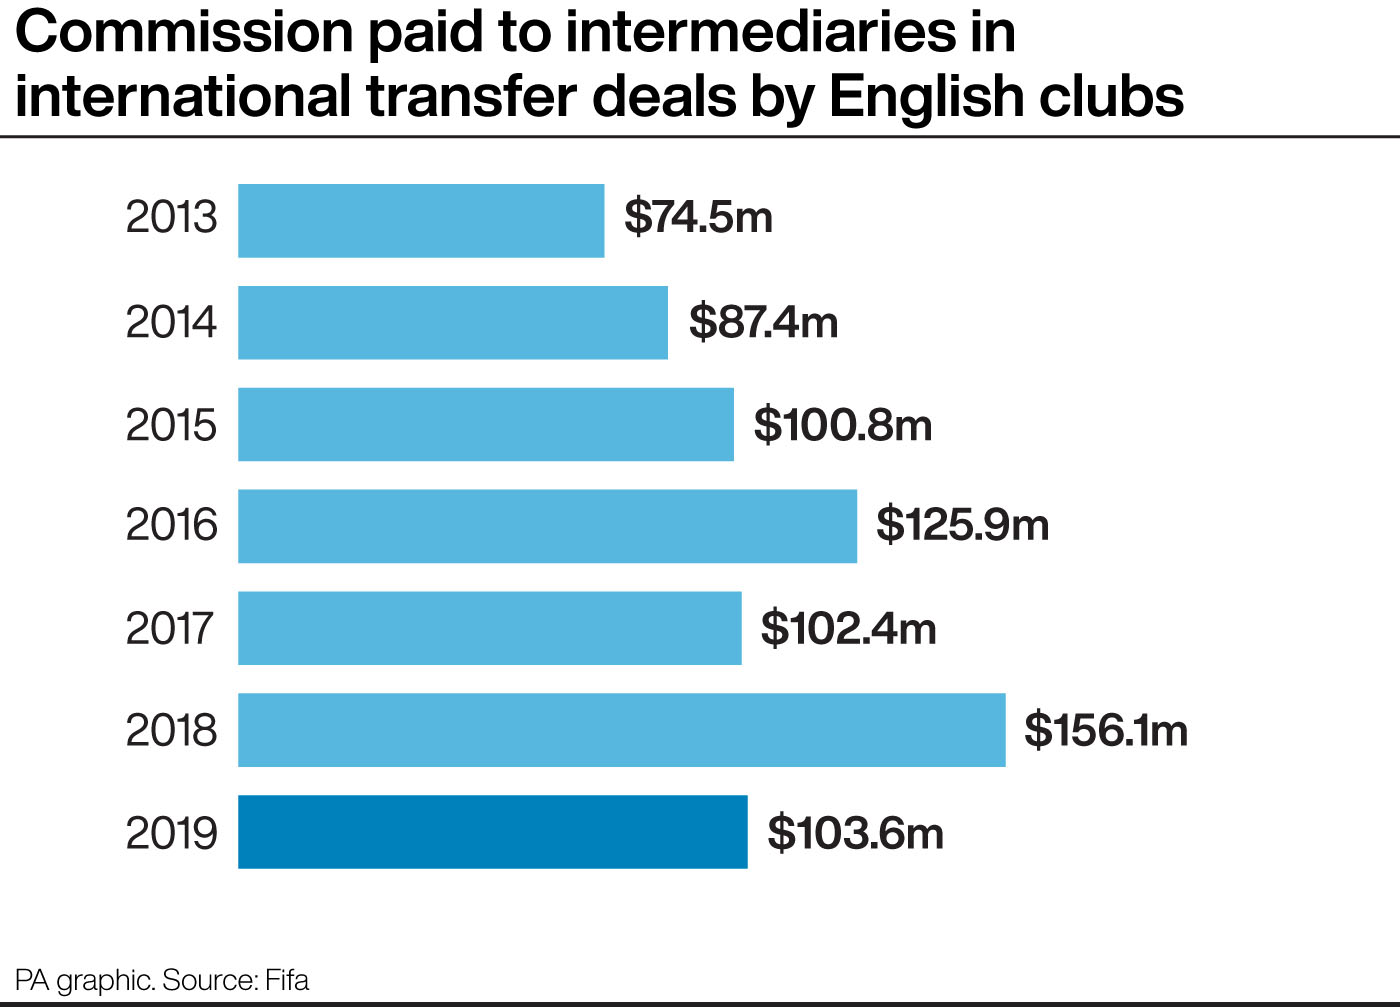 Money spent on commission to intermediaries in 2019 international transfers involving English clubs